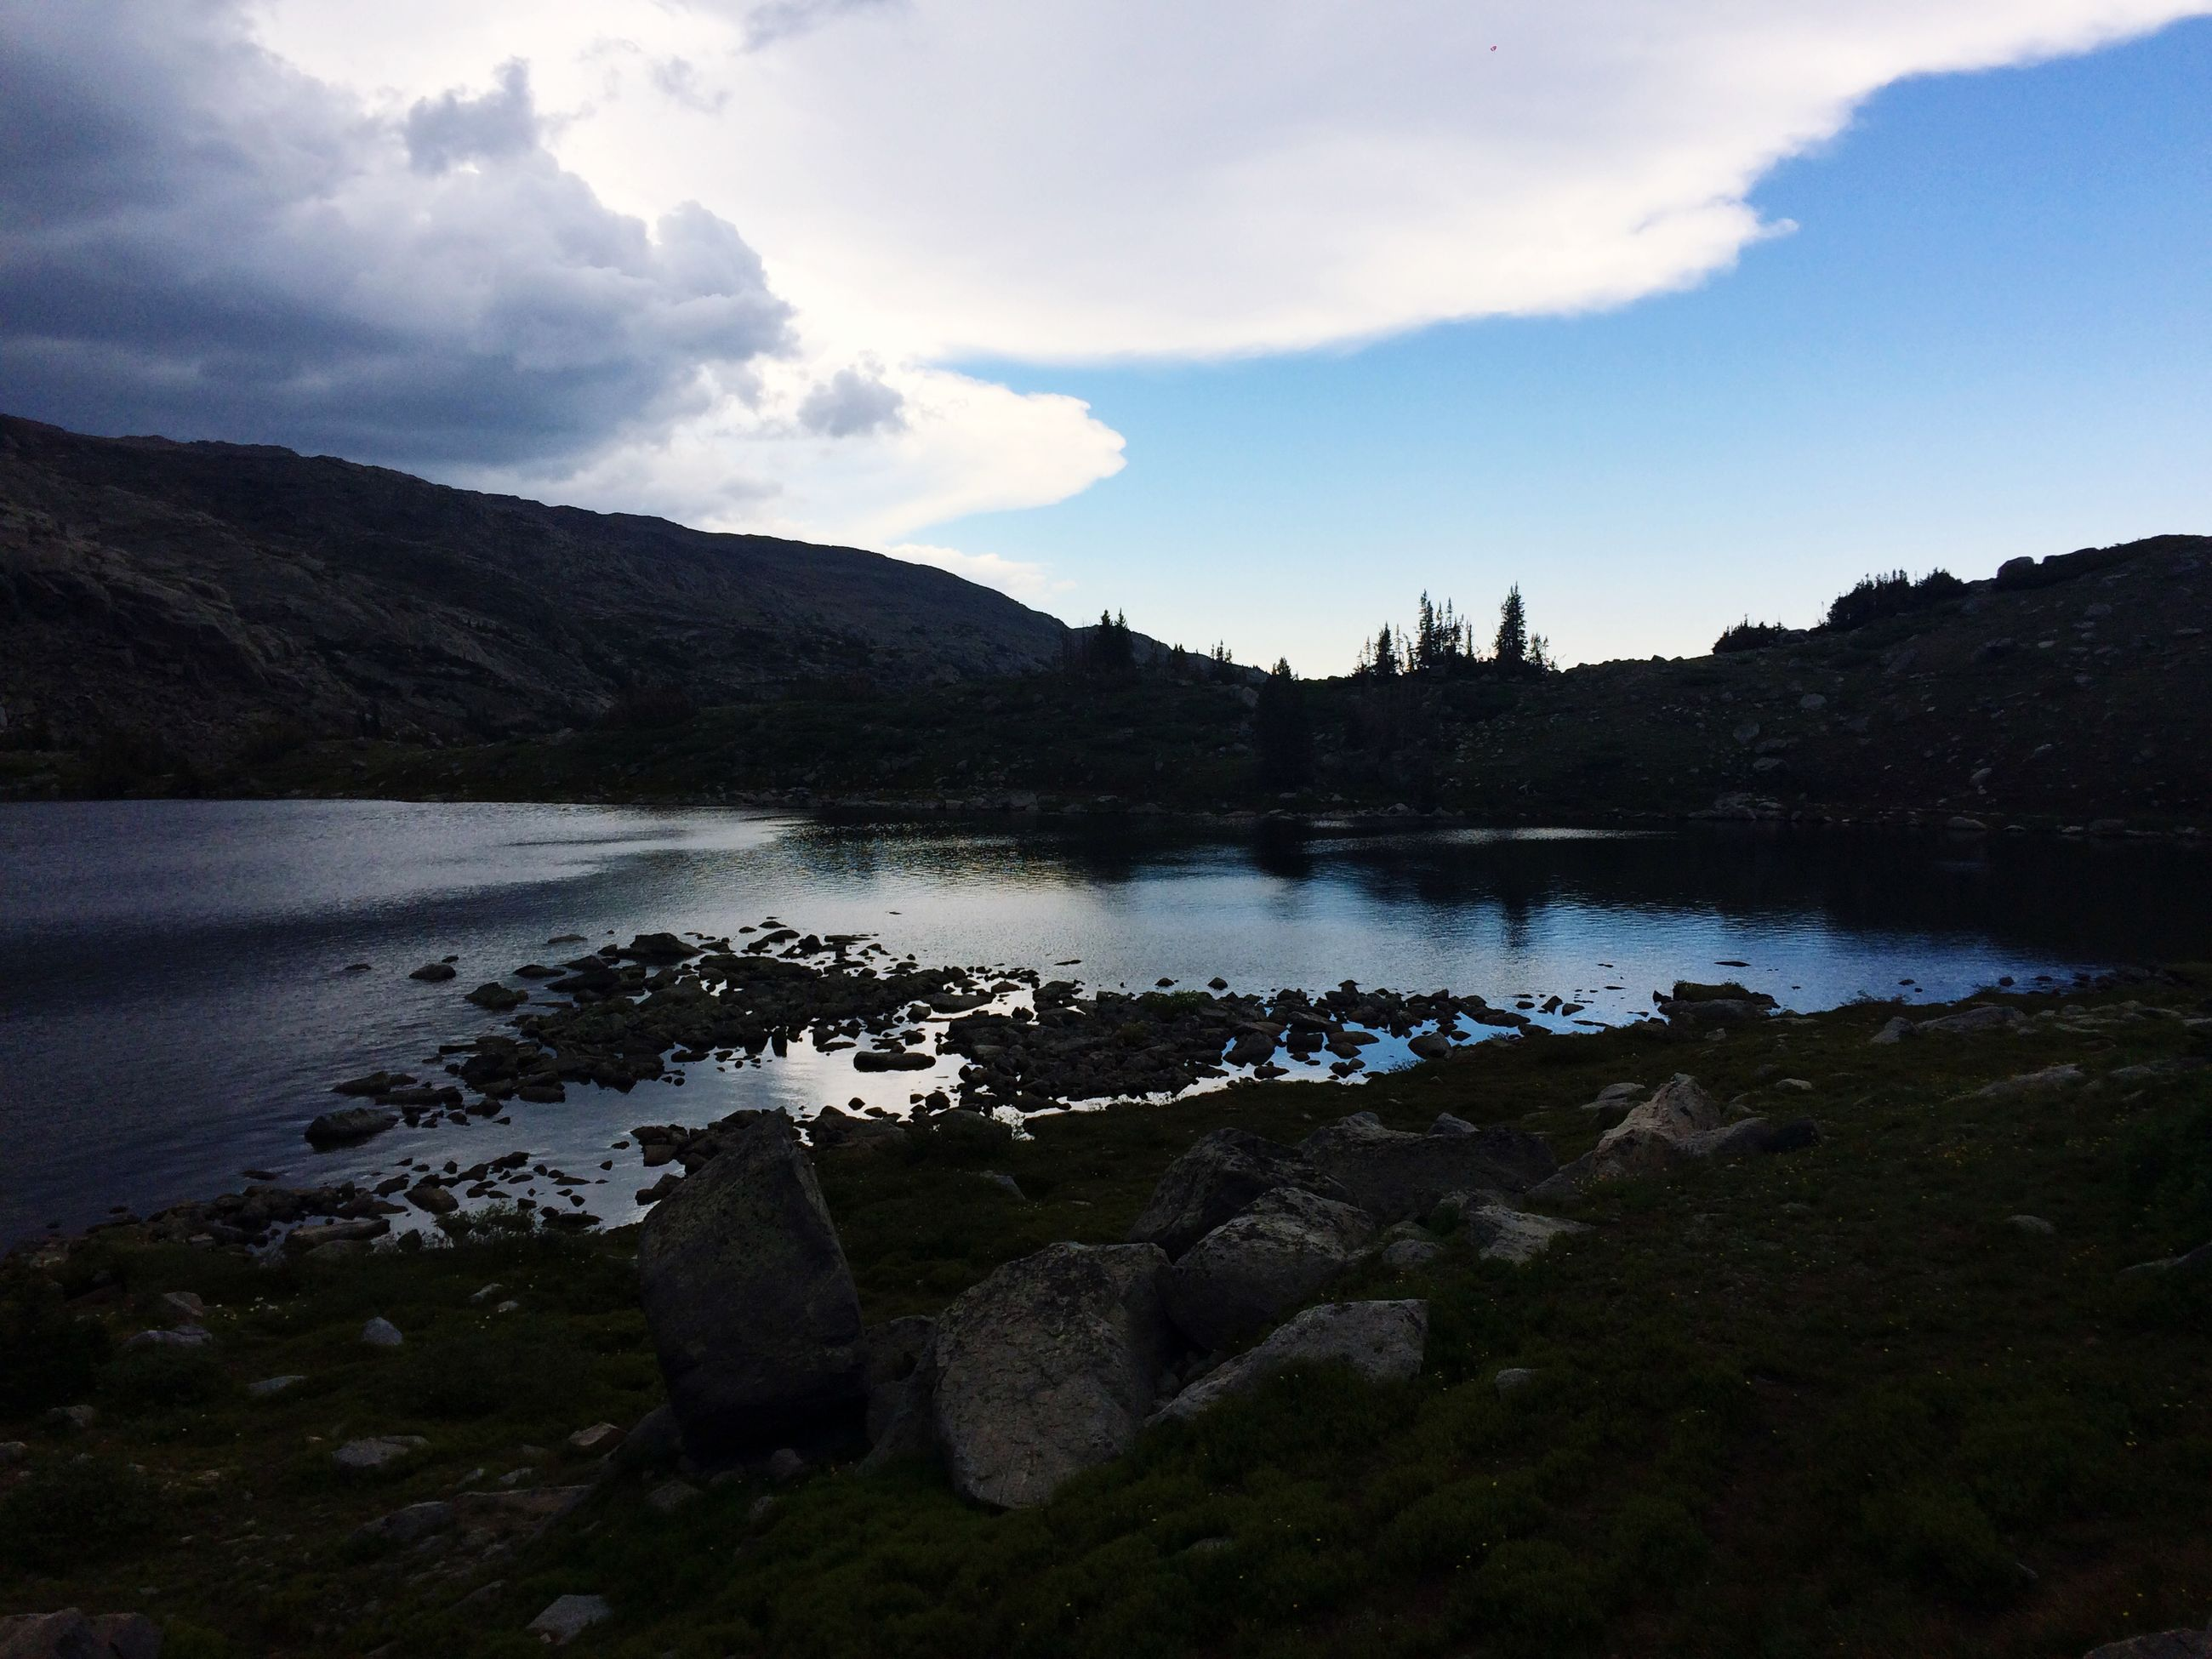 water, sky, tranquil scene, tranquility, lake, mountain, scenics, reflection, beauty in nature, cloud - sky, rock - object, nature, cloud, river, non-urban scene, mountain range, lakeshore, idyllic, landscape, outdoors